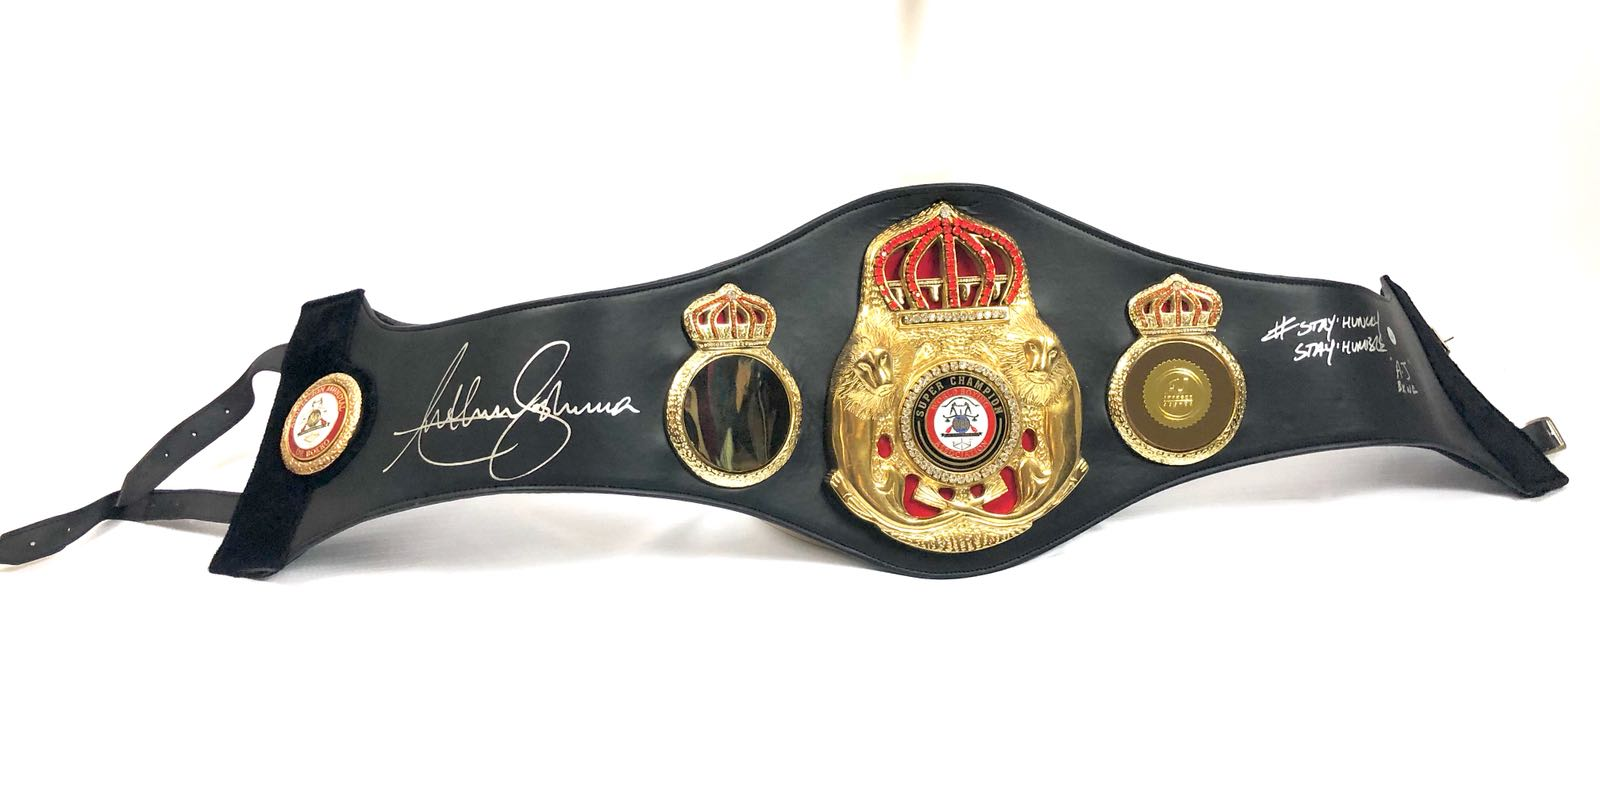 Anthony Joshua full size signed black boxing belt #stay humble #stay hungry - The Memorabilia Team